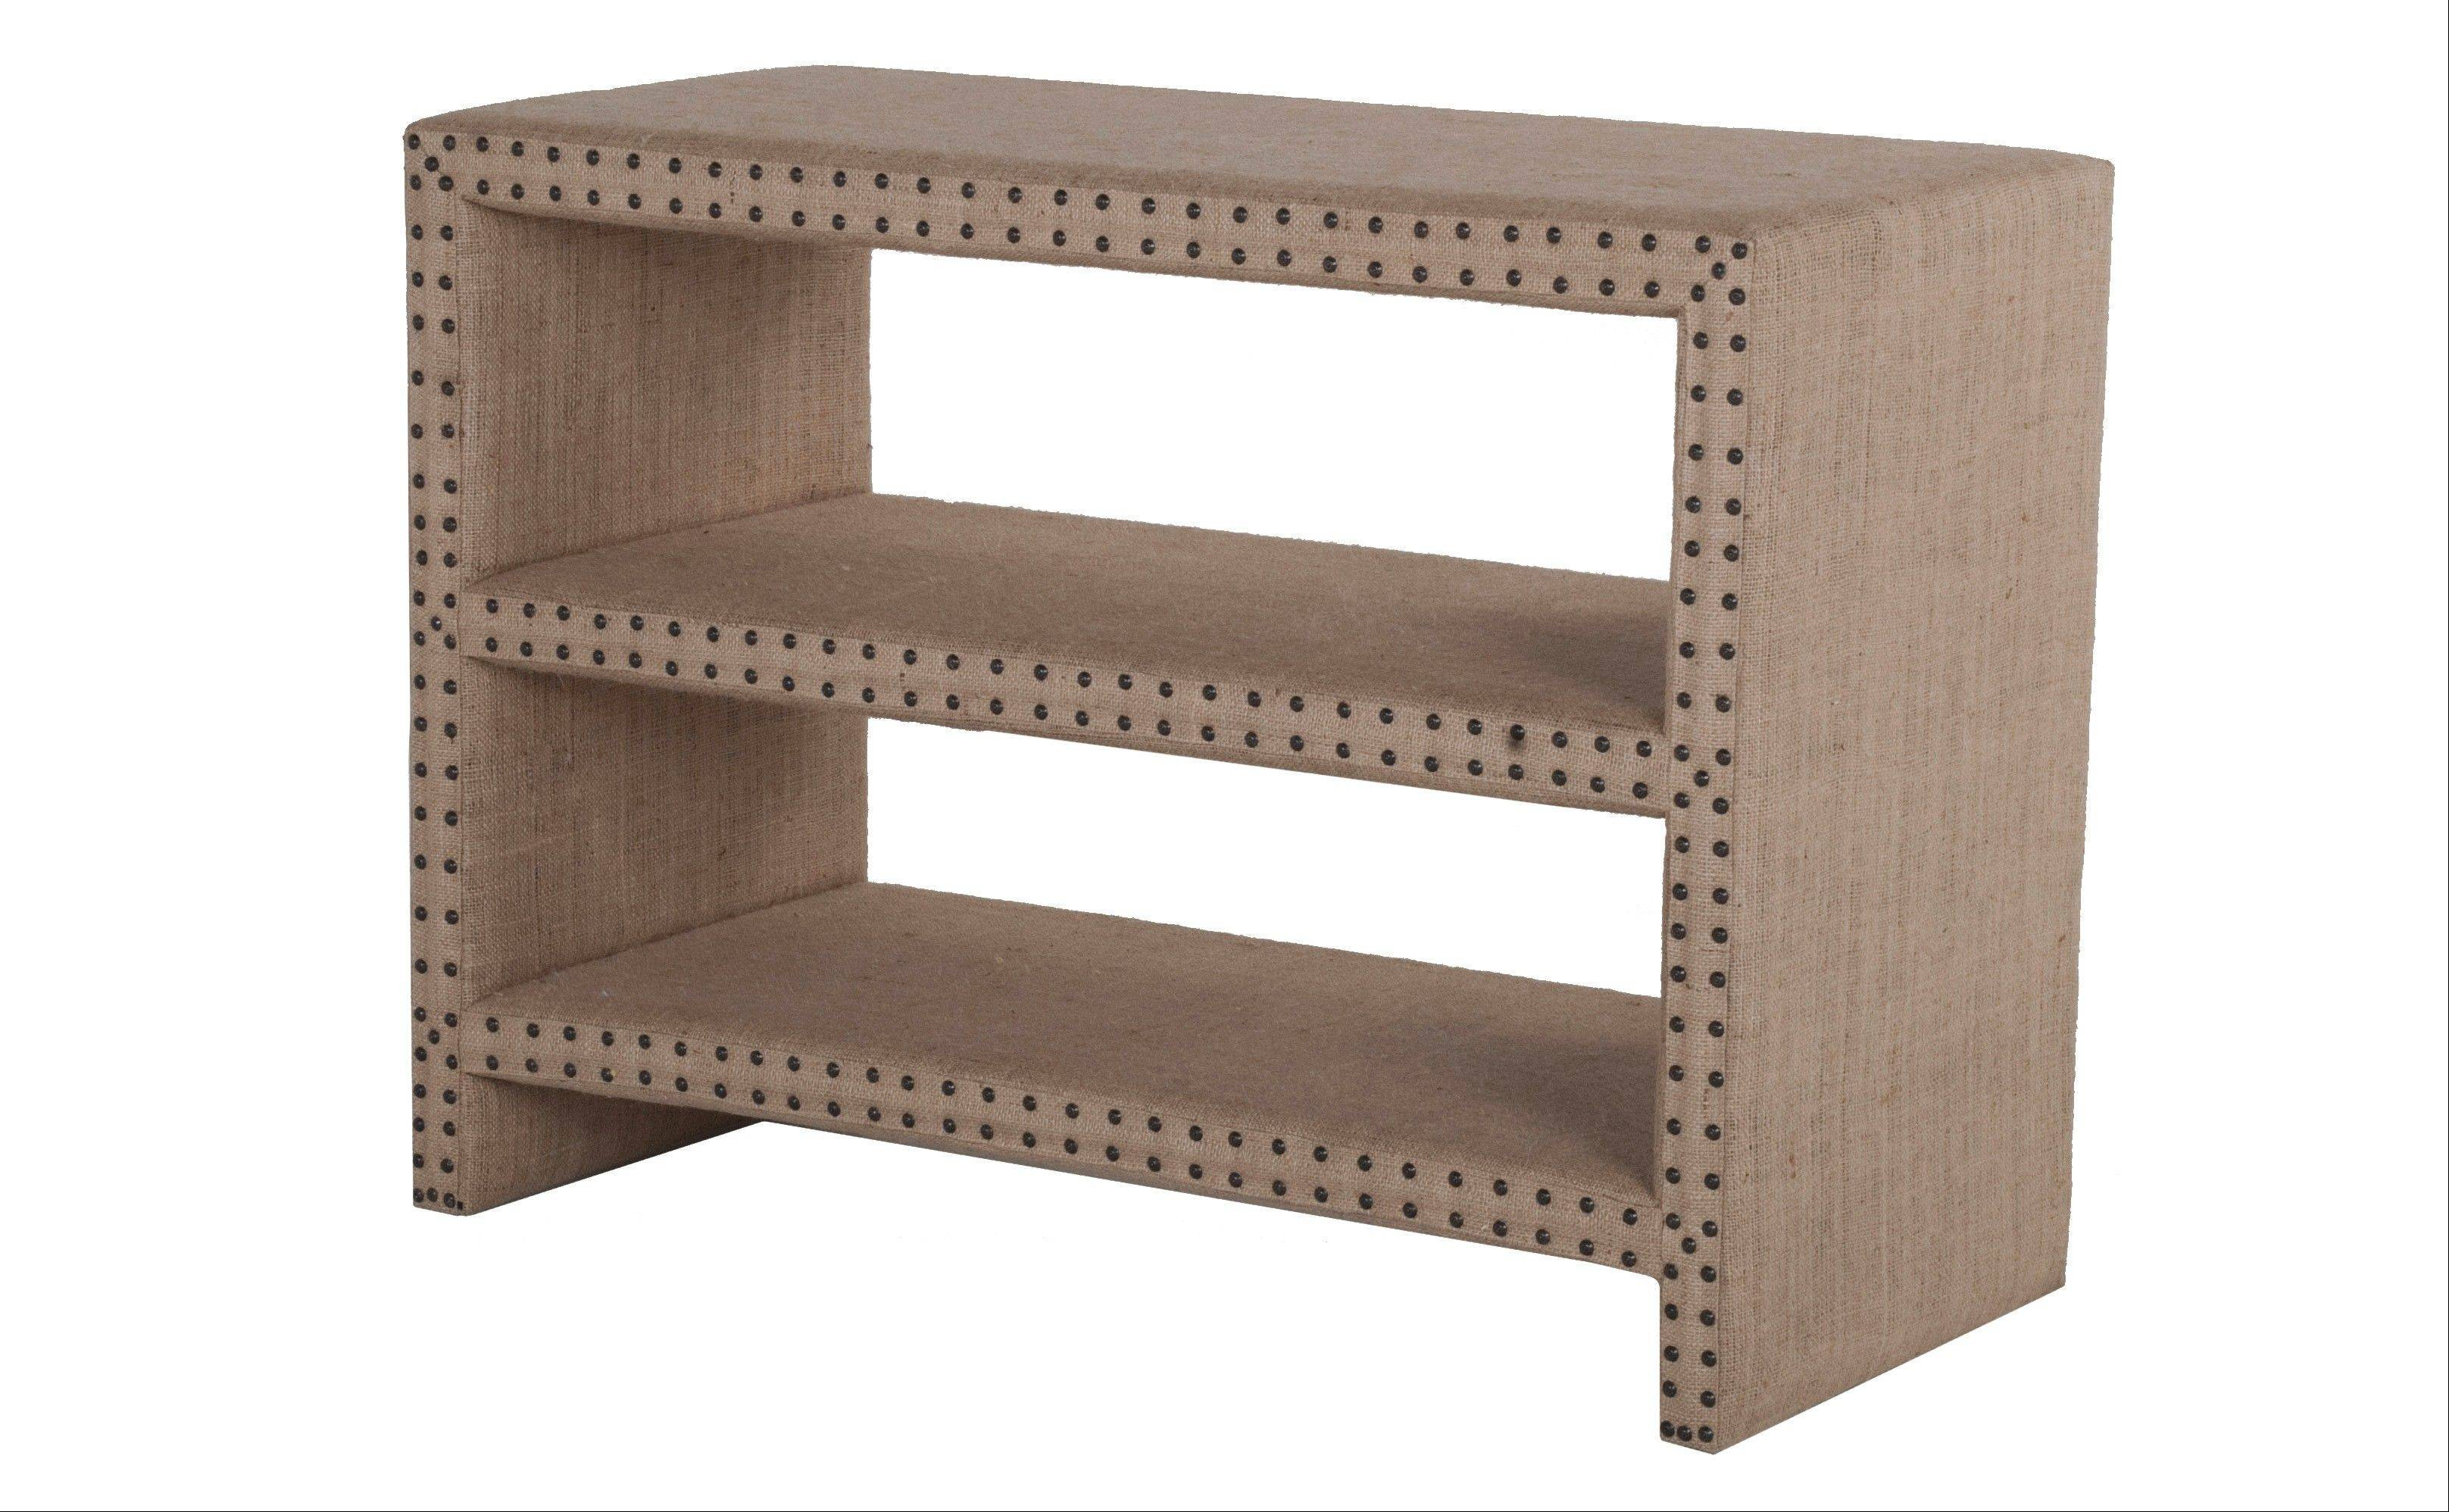 A Bretton burlap shelf that combines modern lines and a rustic texture, accented with nailhead trim.